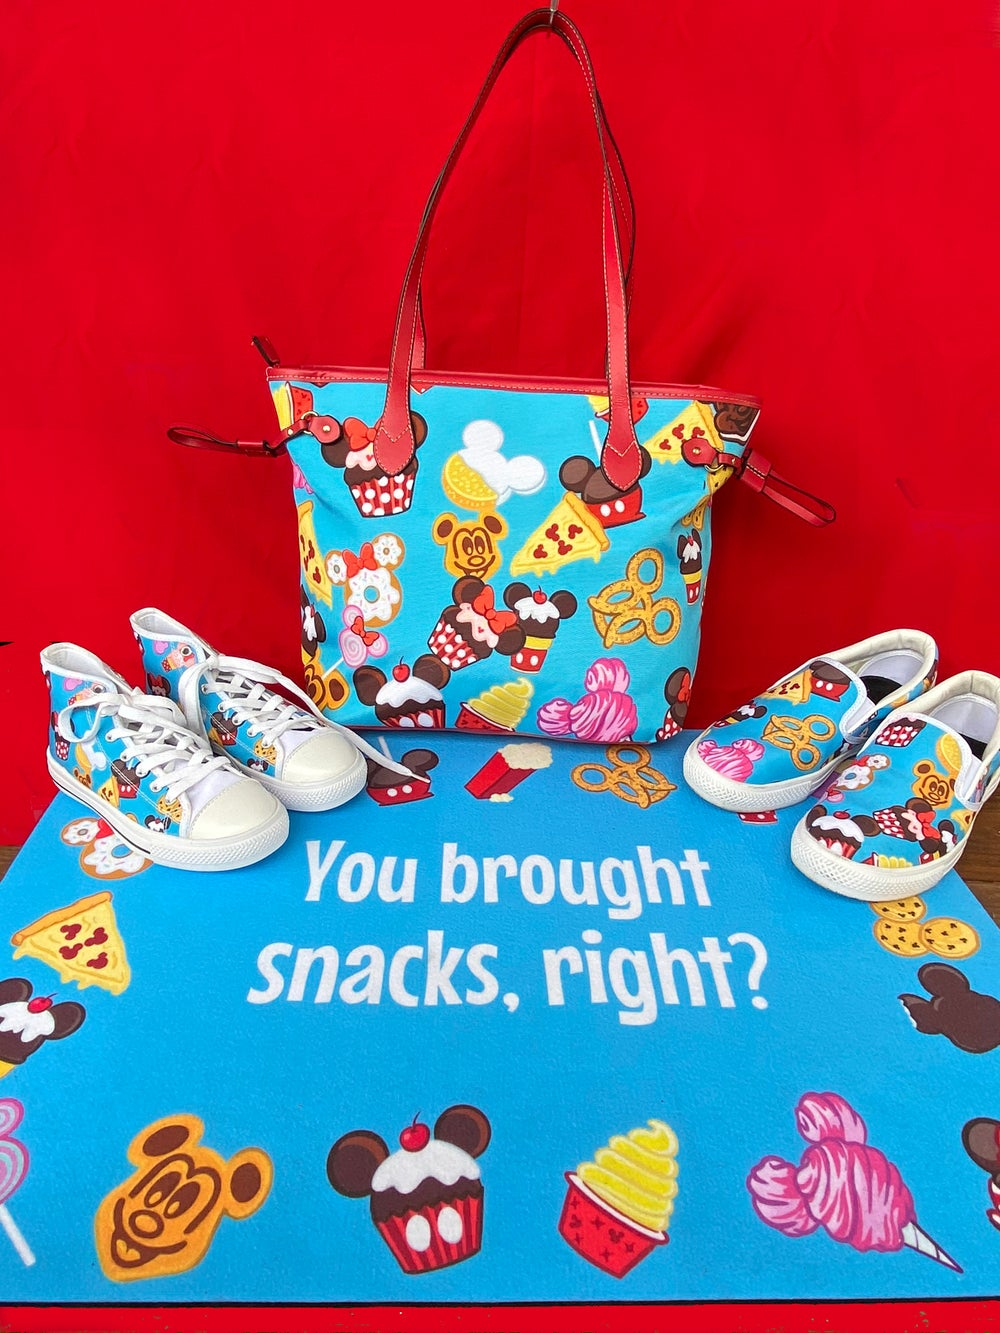 Blue Snacky Snack bags